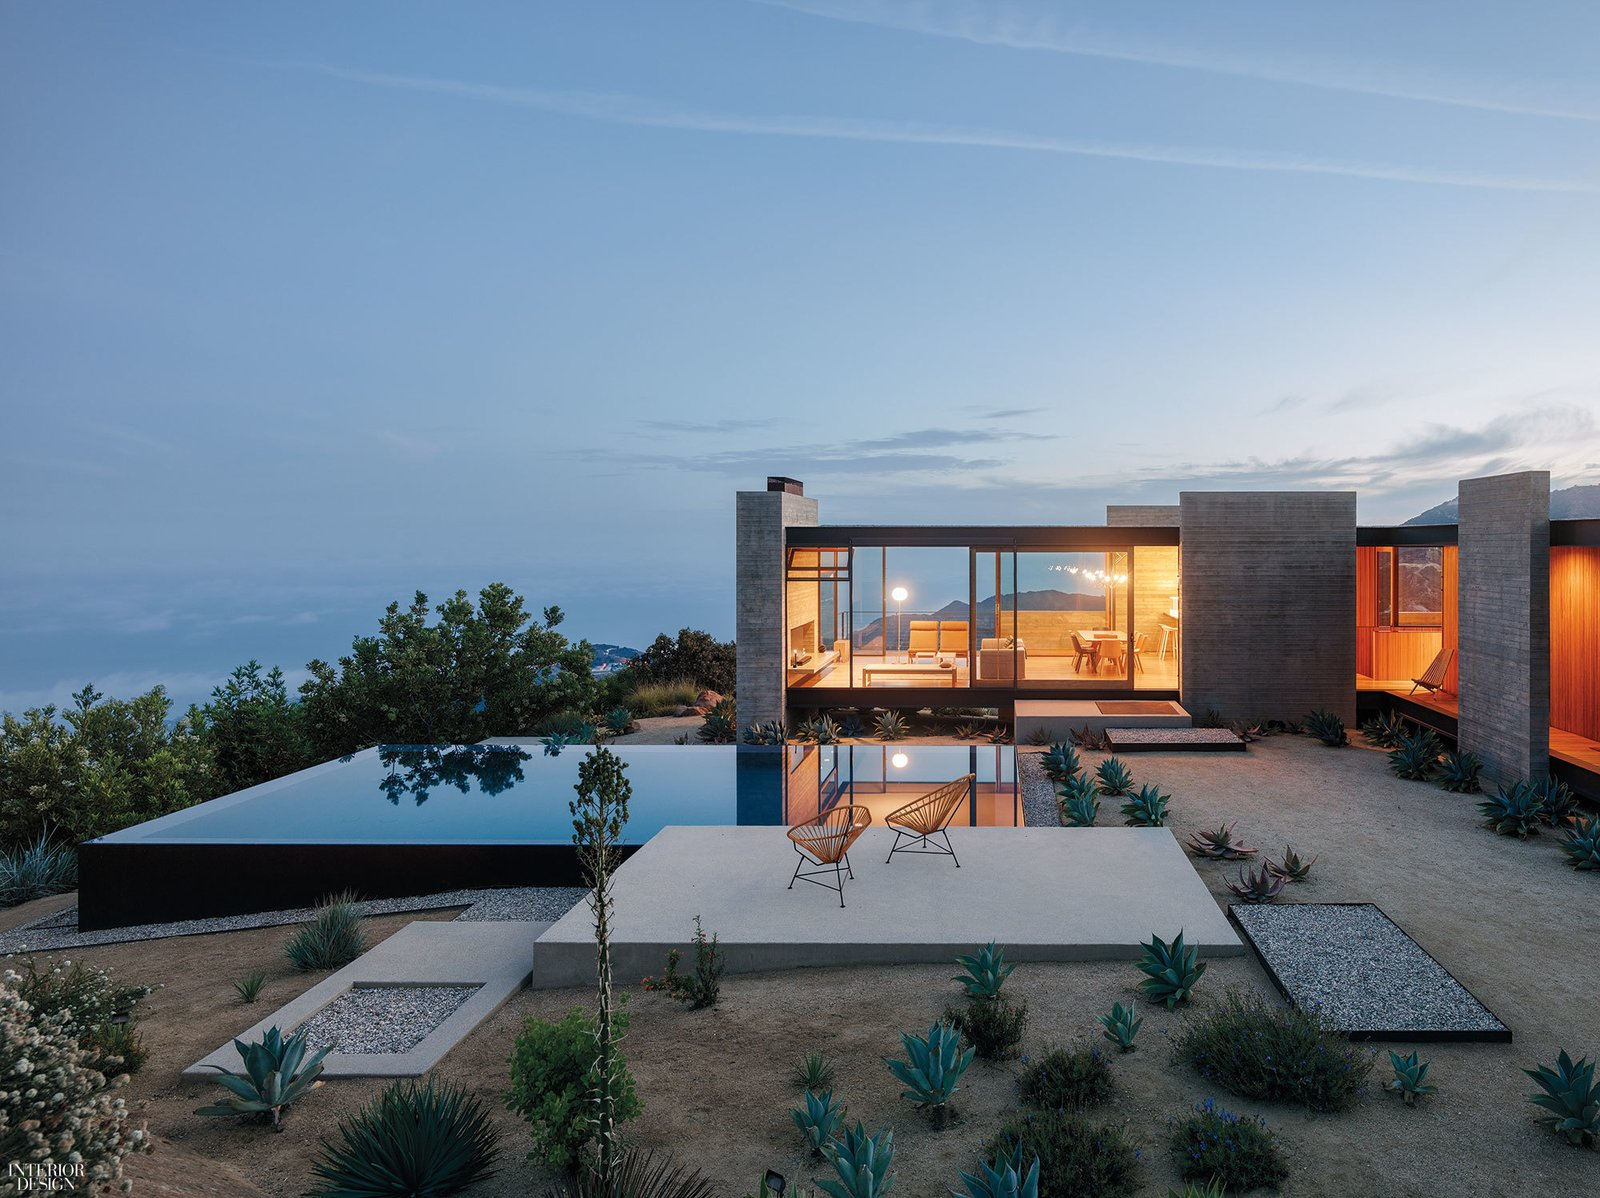 Saddle Peak House, Topanga Canyon by Sant Architects. Interiors by Context Gallery.